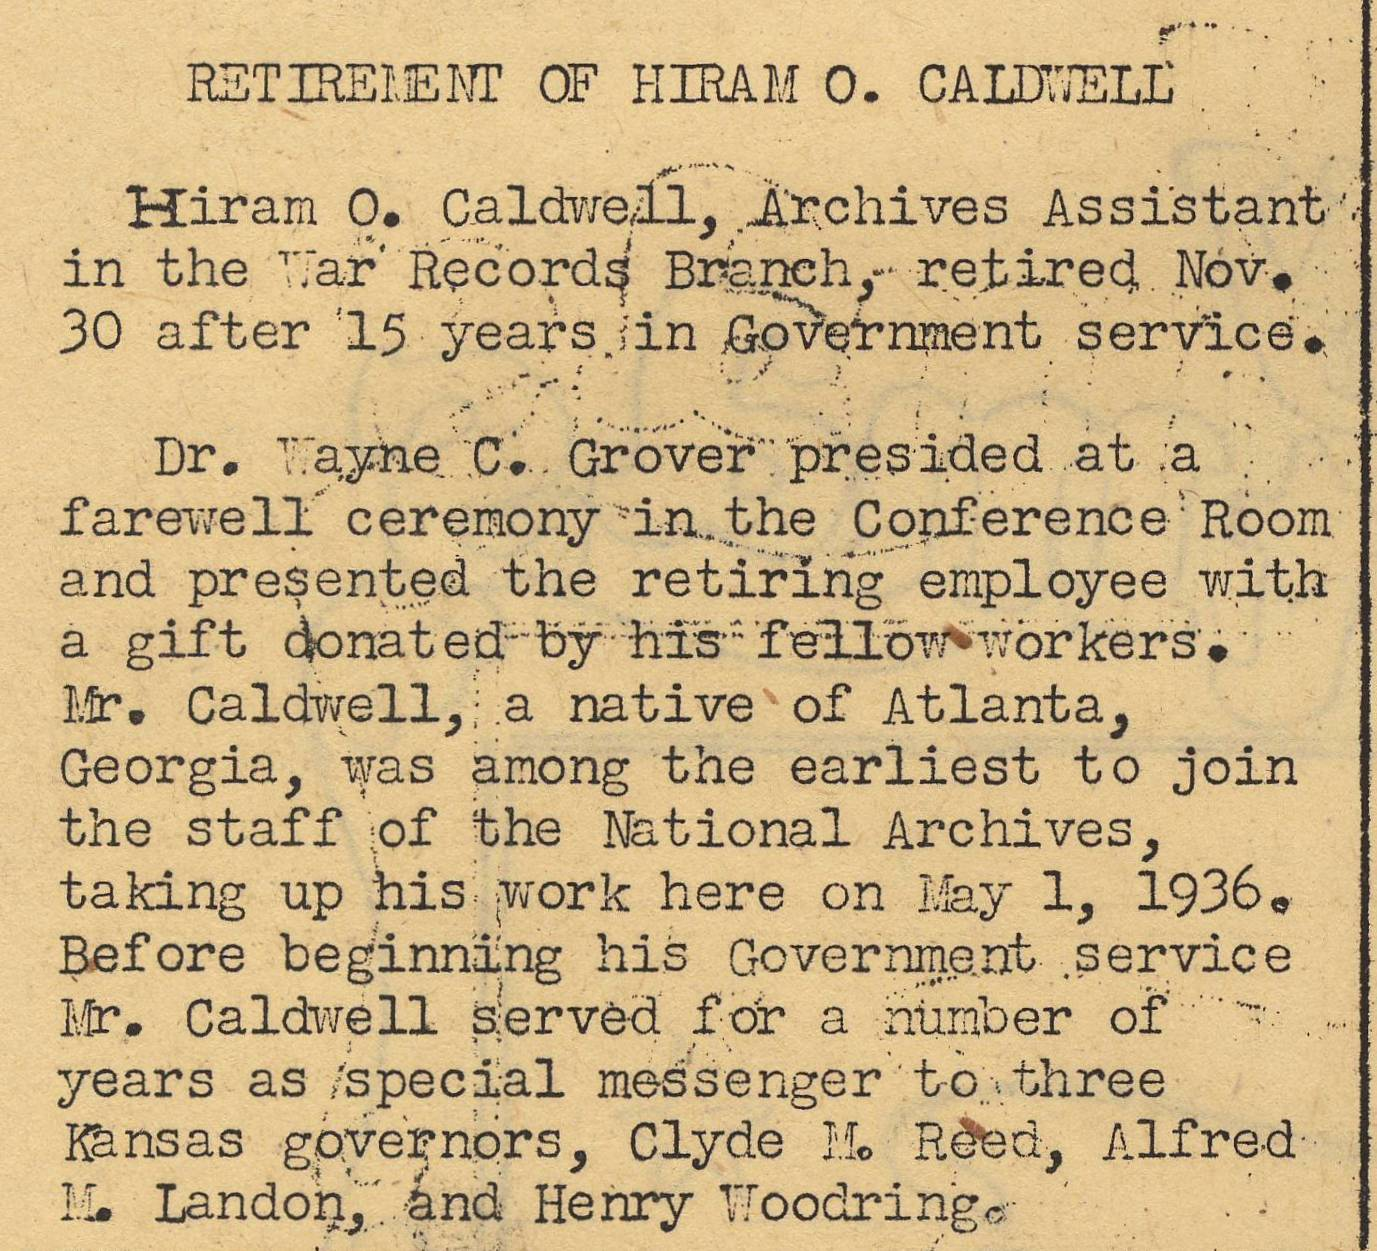 Archiviews, December 1951 - Retirement of Mr. Caldwell, p. 2.jpg